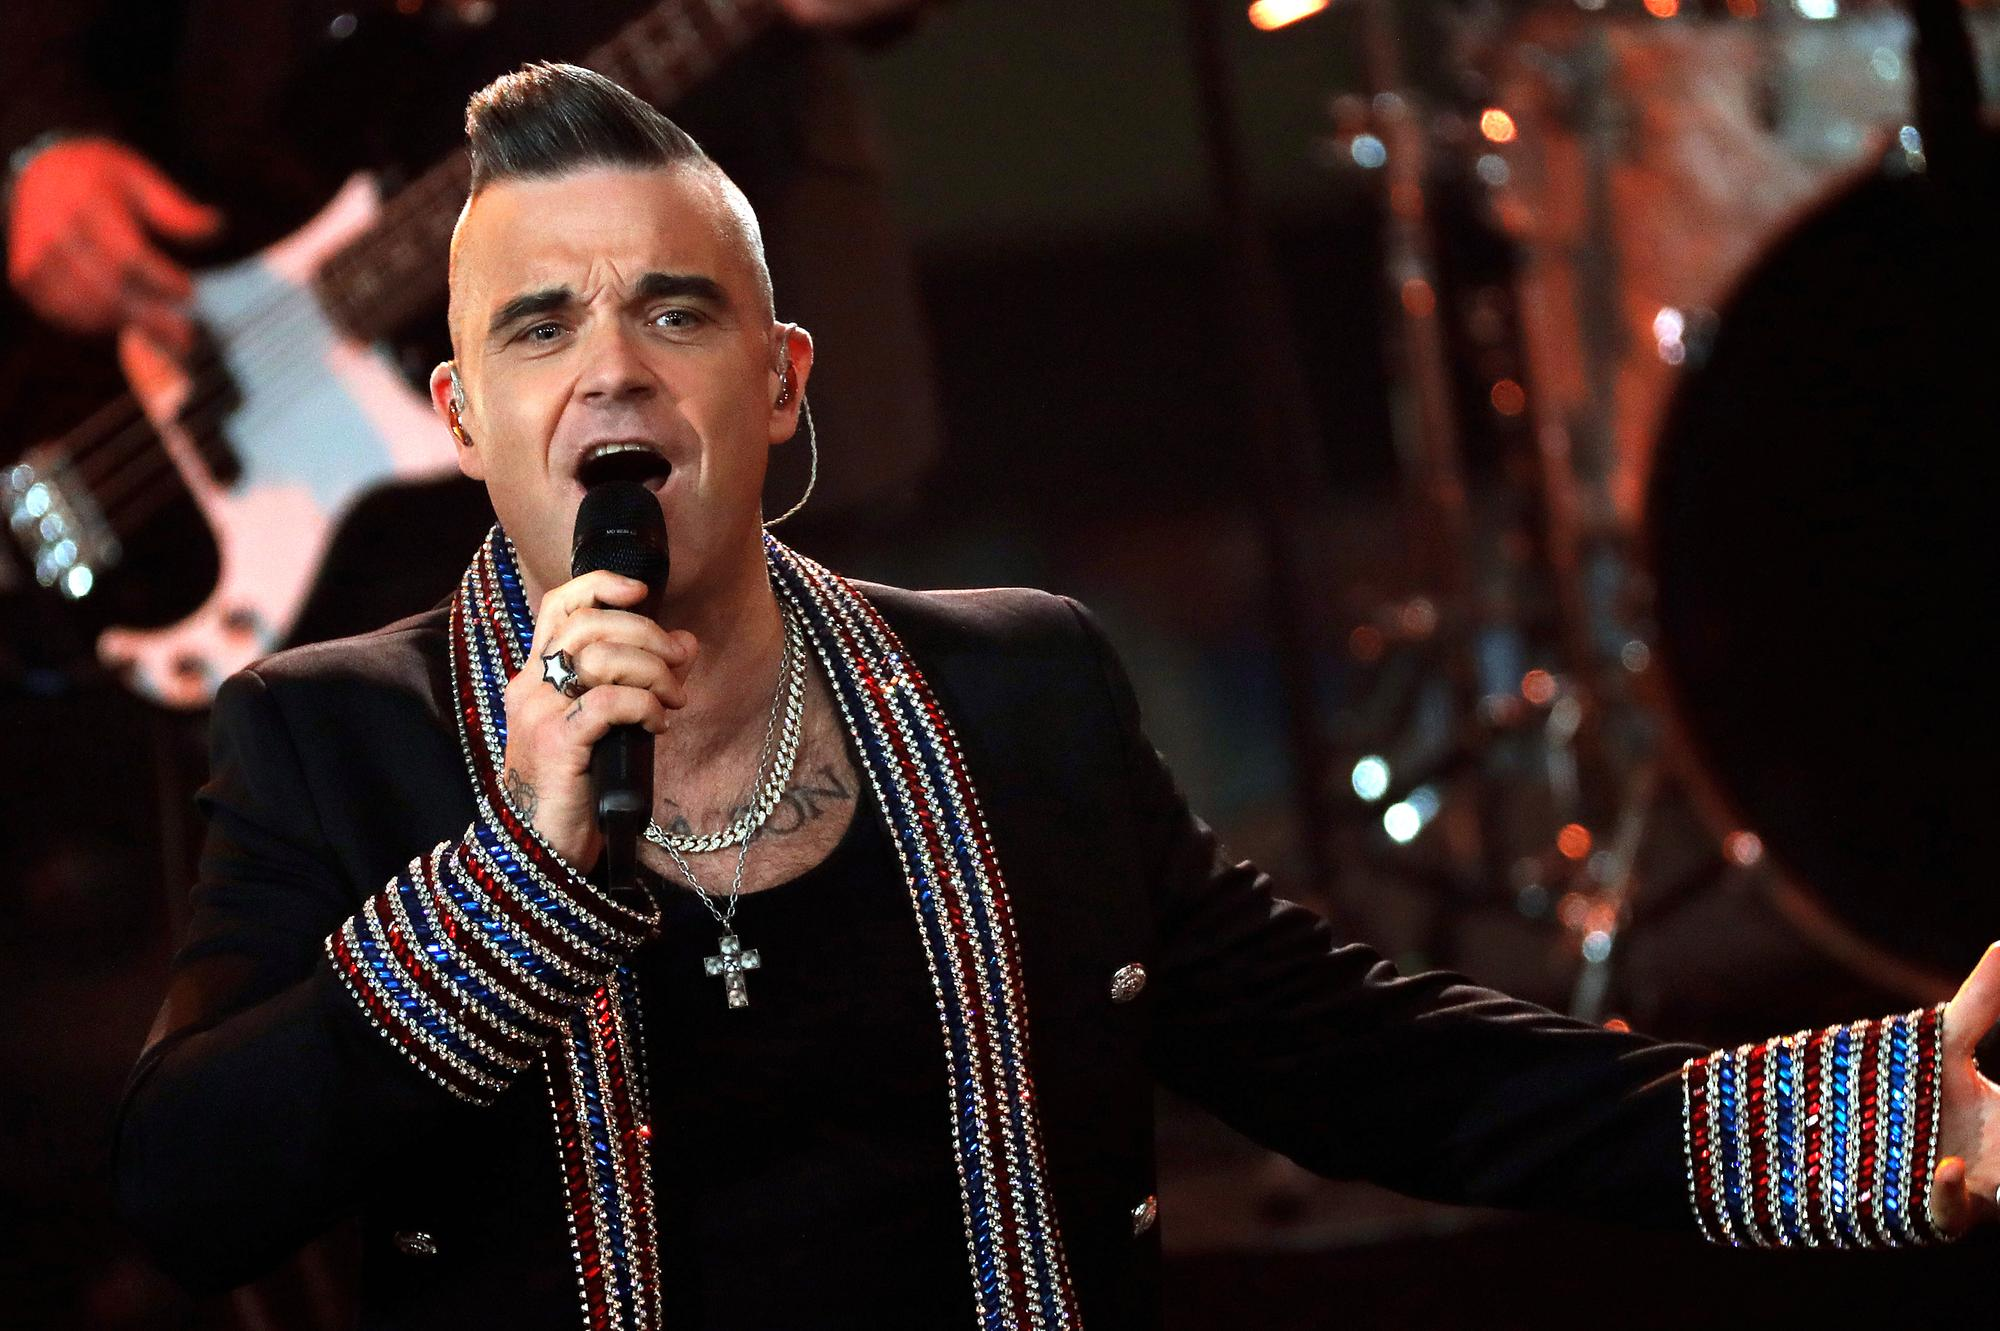 Robbie Williams' new Christmas song is the worst ever – Aidan Smith   The Scotsman